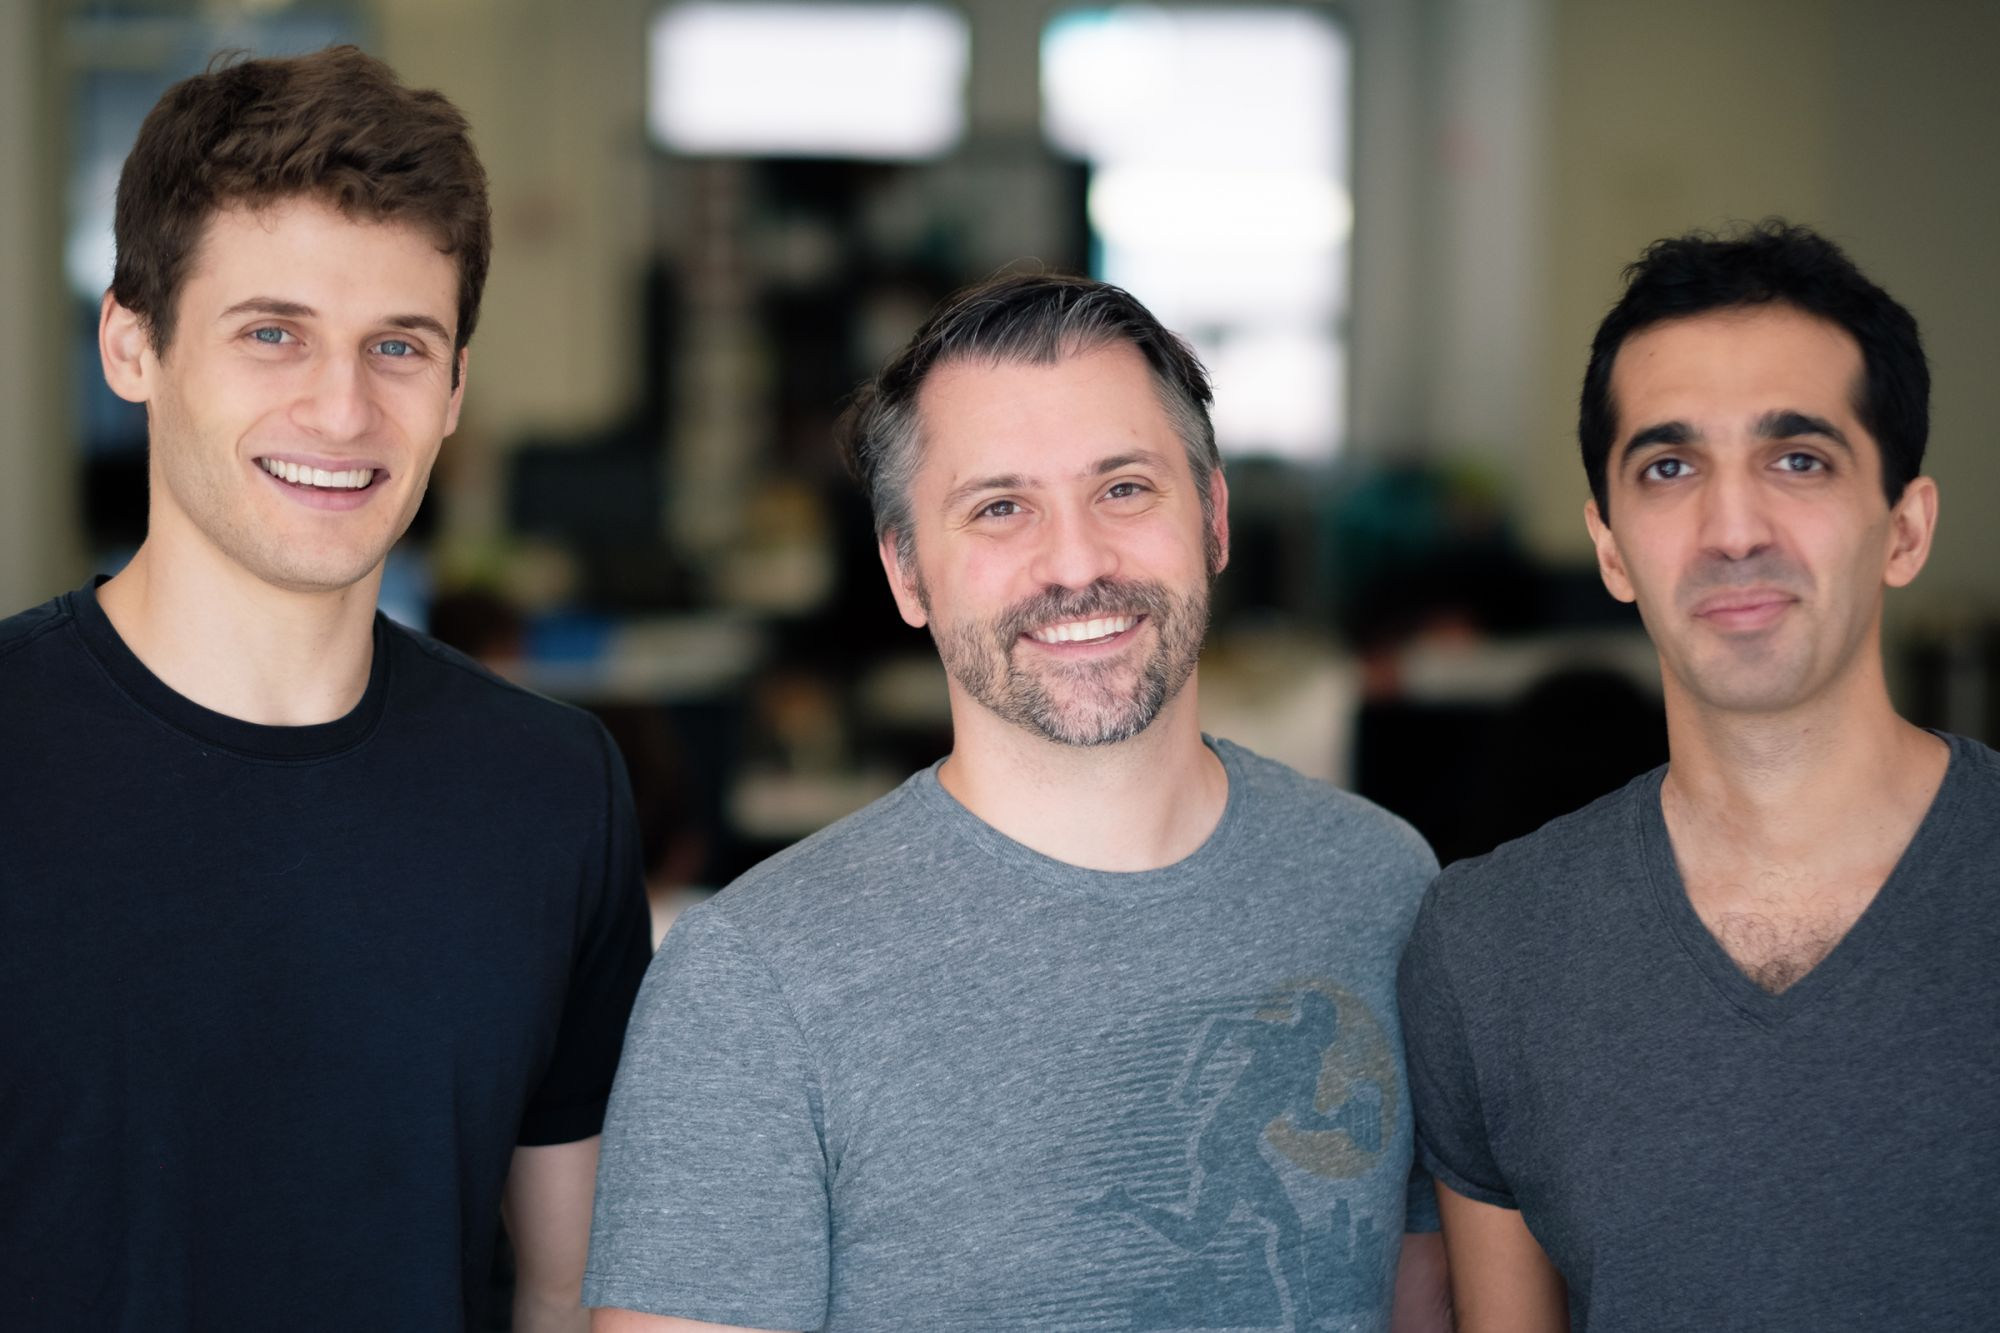 How The Founders of This Healthcare Startup Raised More $91M Their First Year in Business